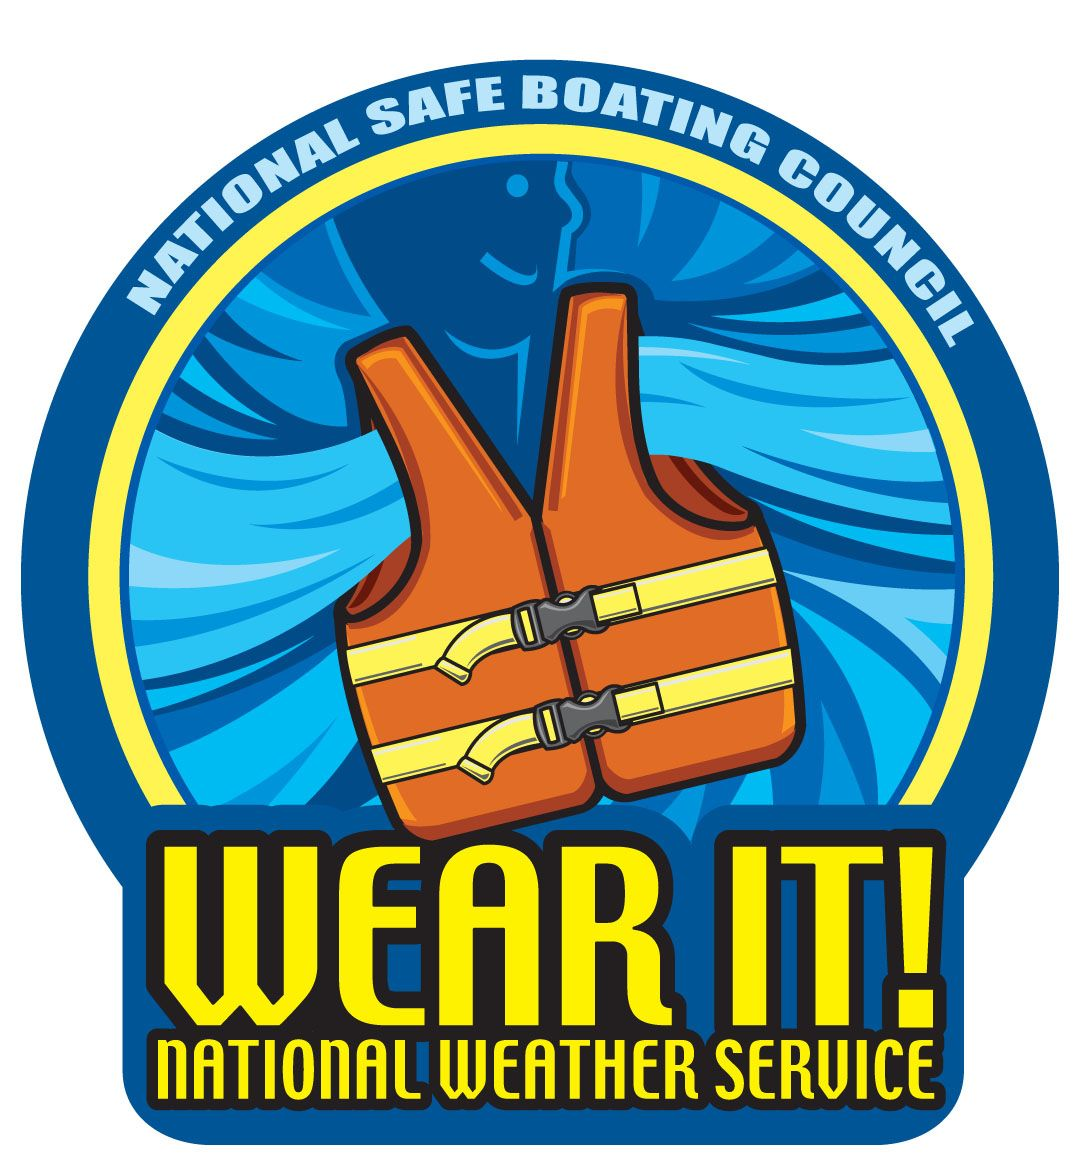 Stay safe on the water this summer! http//www.coverquest